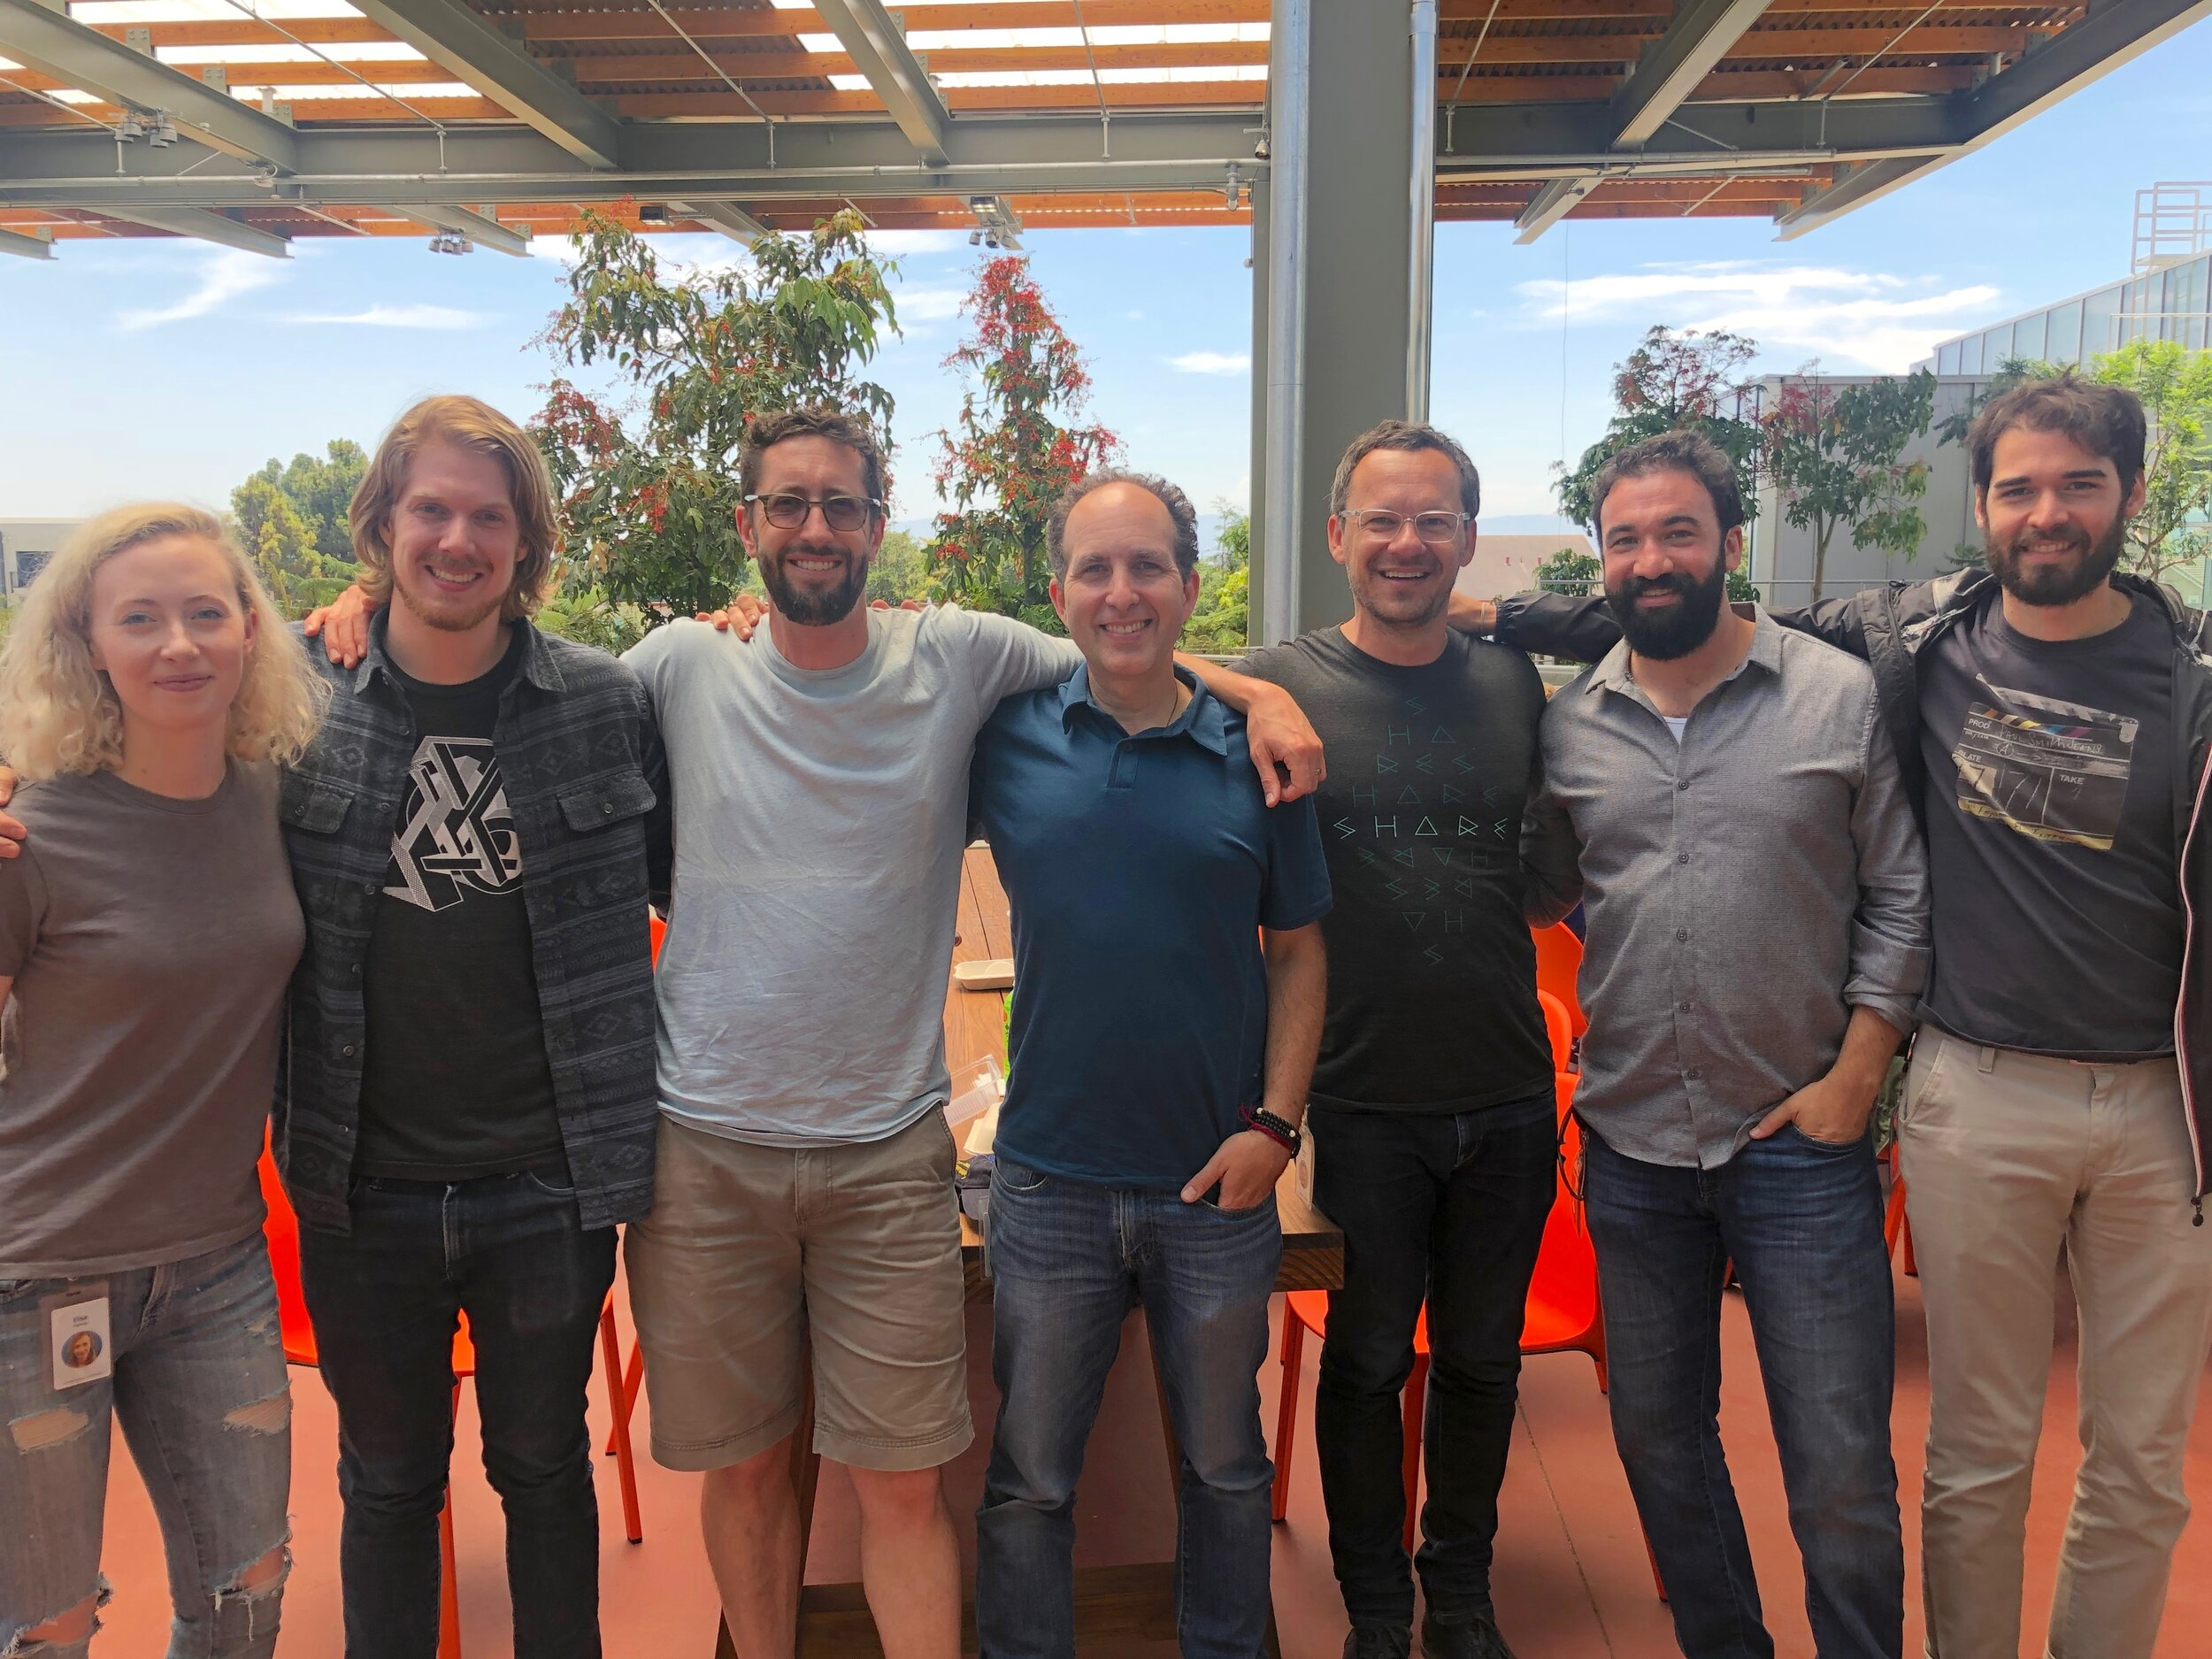 Former Eyegroove team members Elise Ramsay, Matt Roberts, Graham McDermott, Scott Snibbe, Andre Seibel, Michael Feldstein, Johan Ismael at Facebook, August 2018.